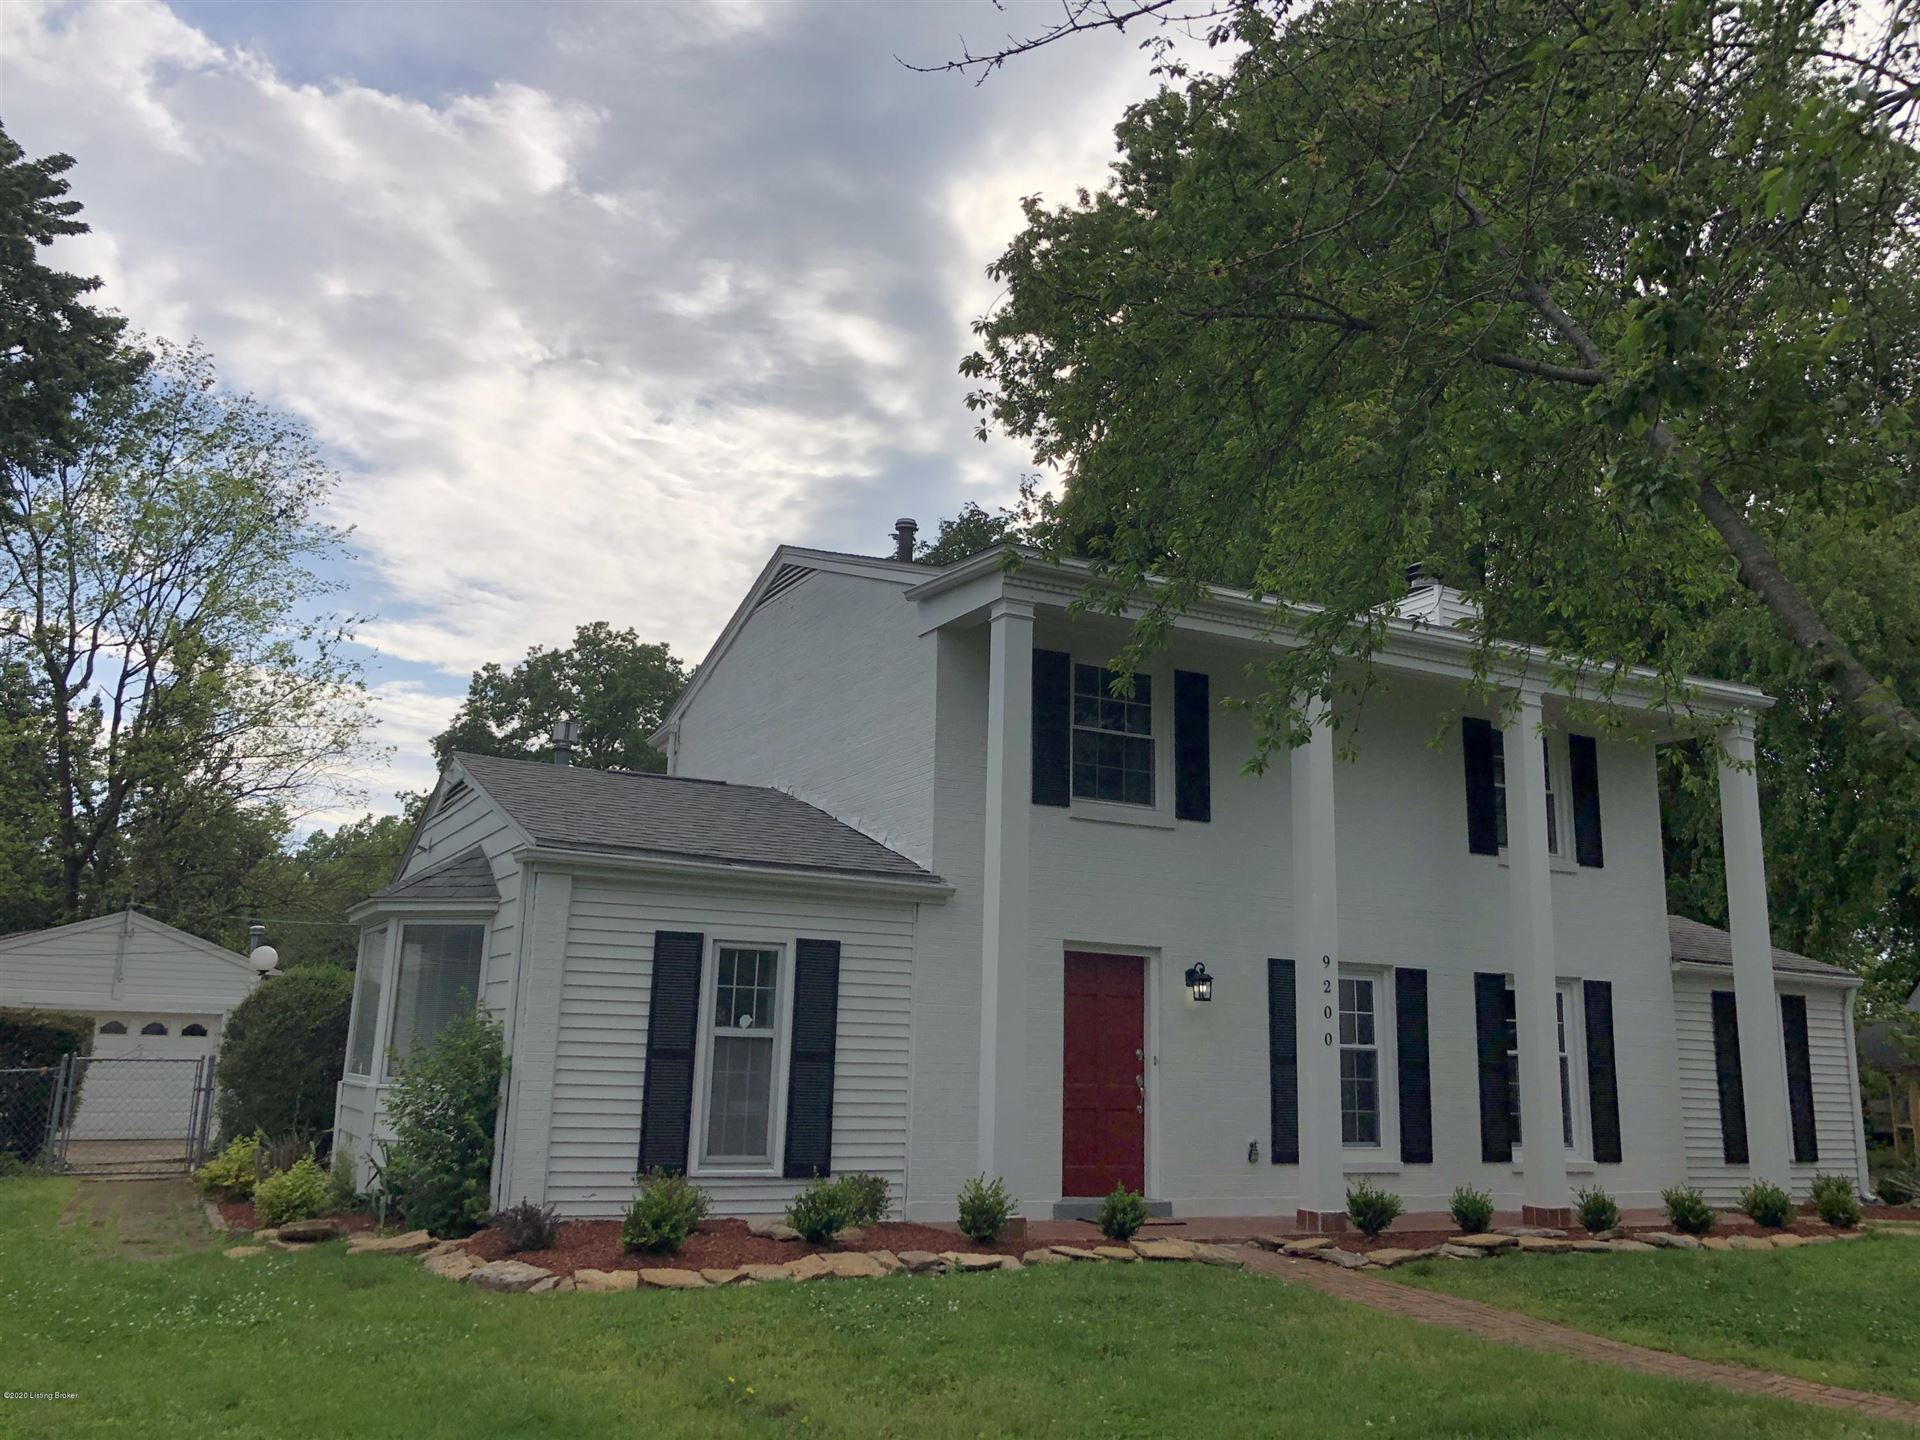 Property Image Of 9200 Walhampton Ct In Louisville, Ky